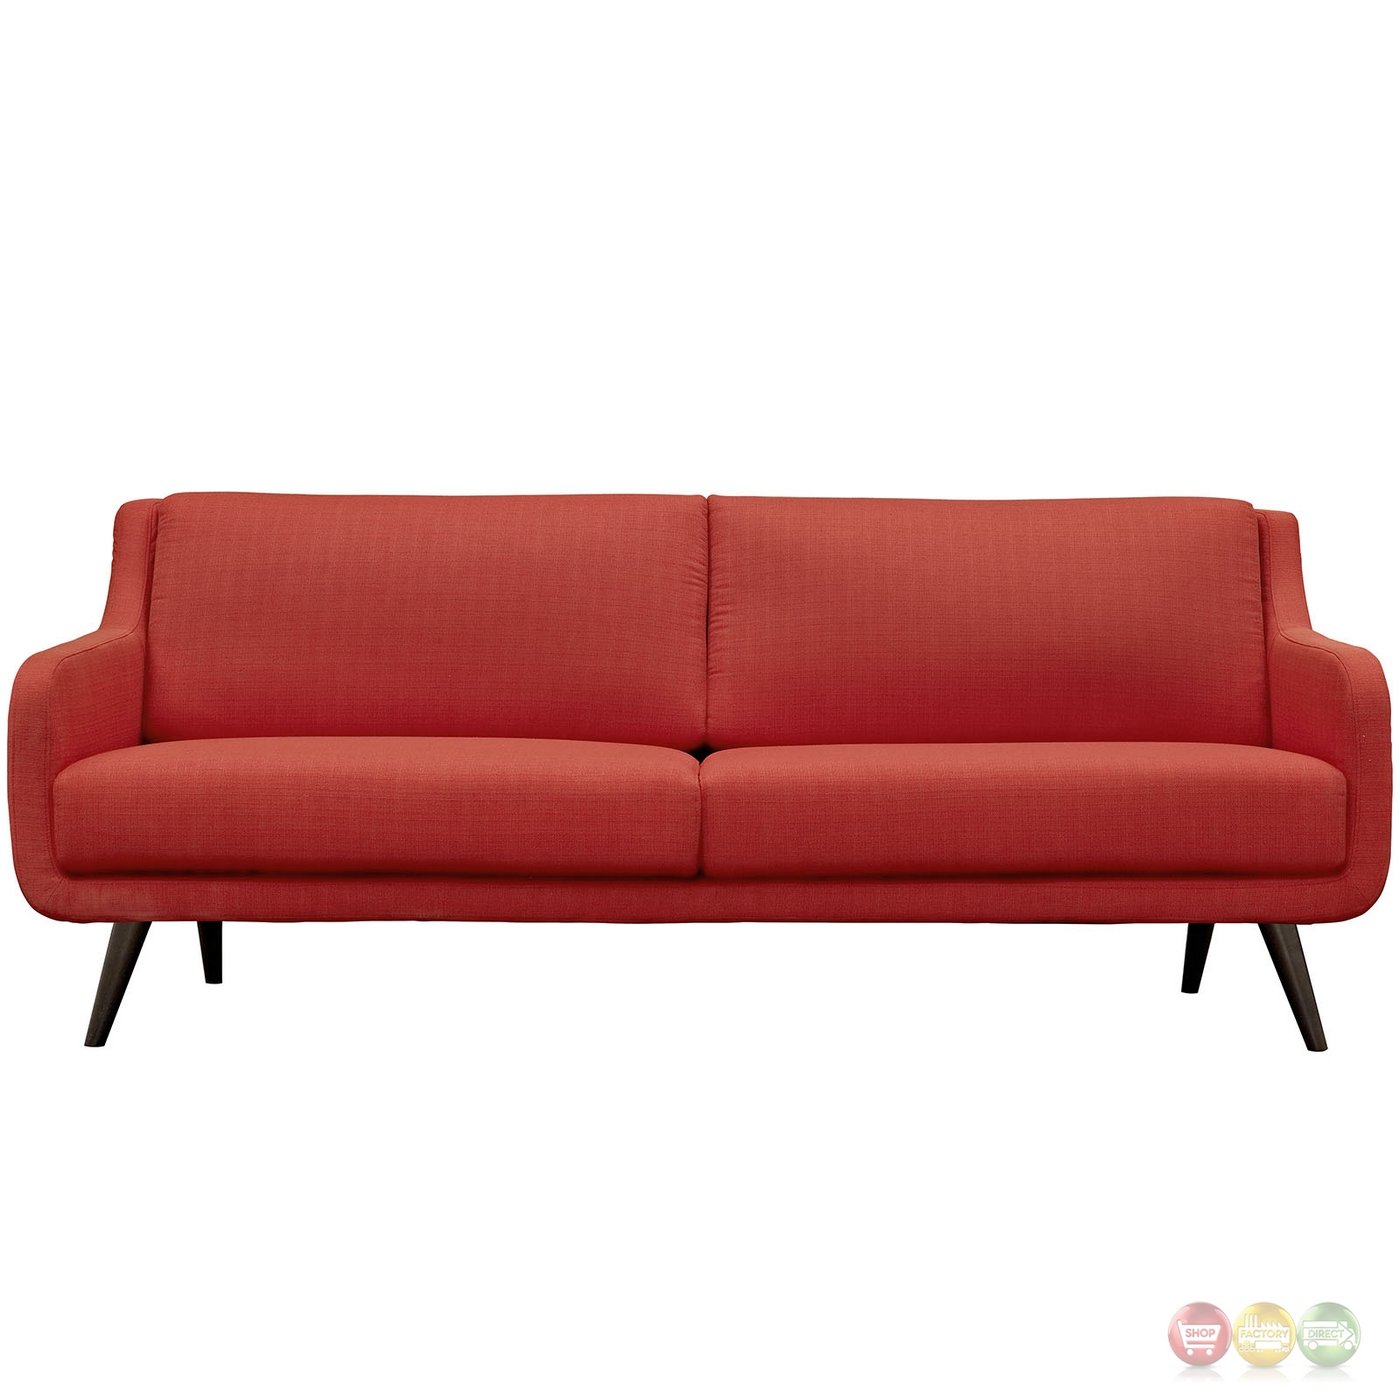 mid century modern verve upholstered sofa with wood frame atomic red